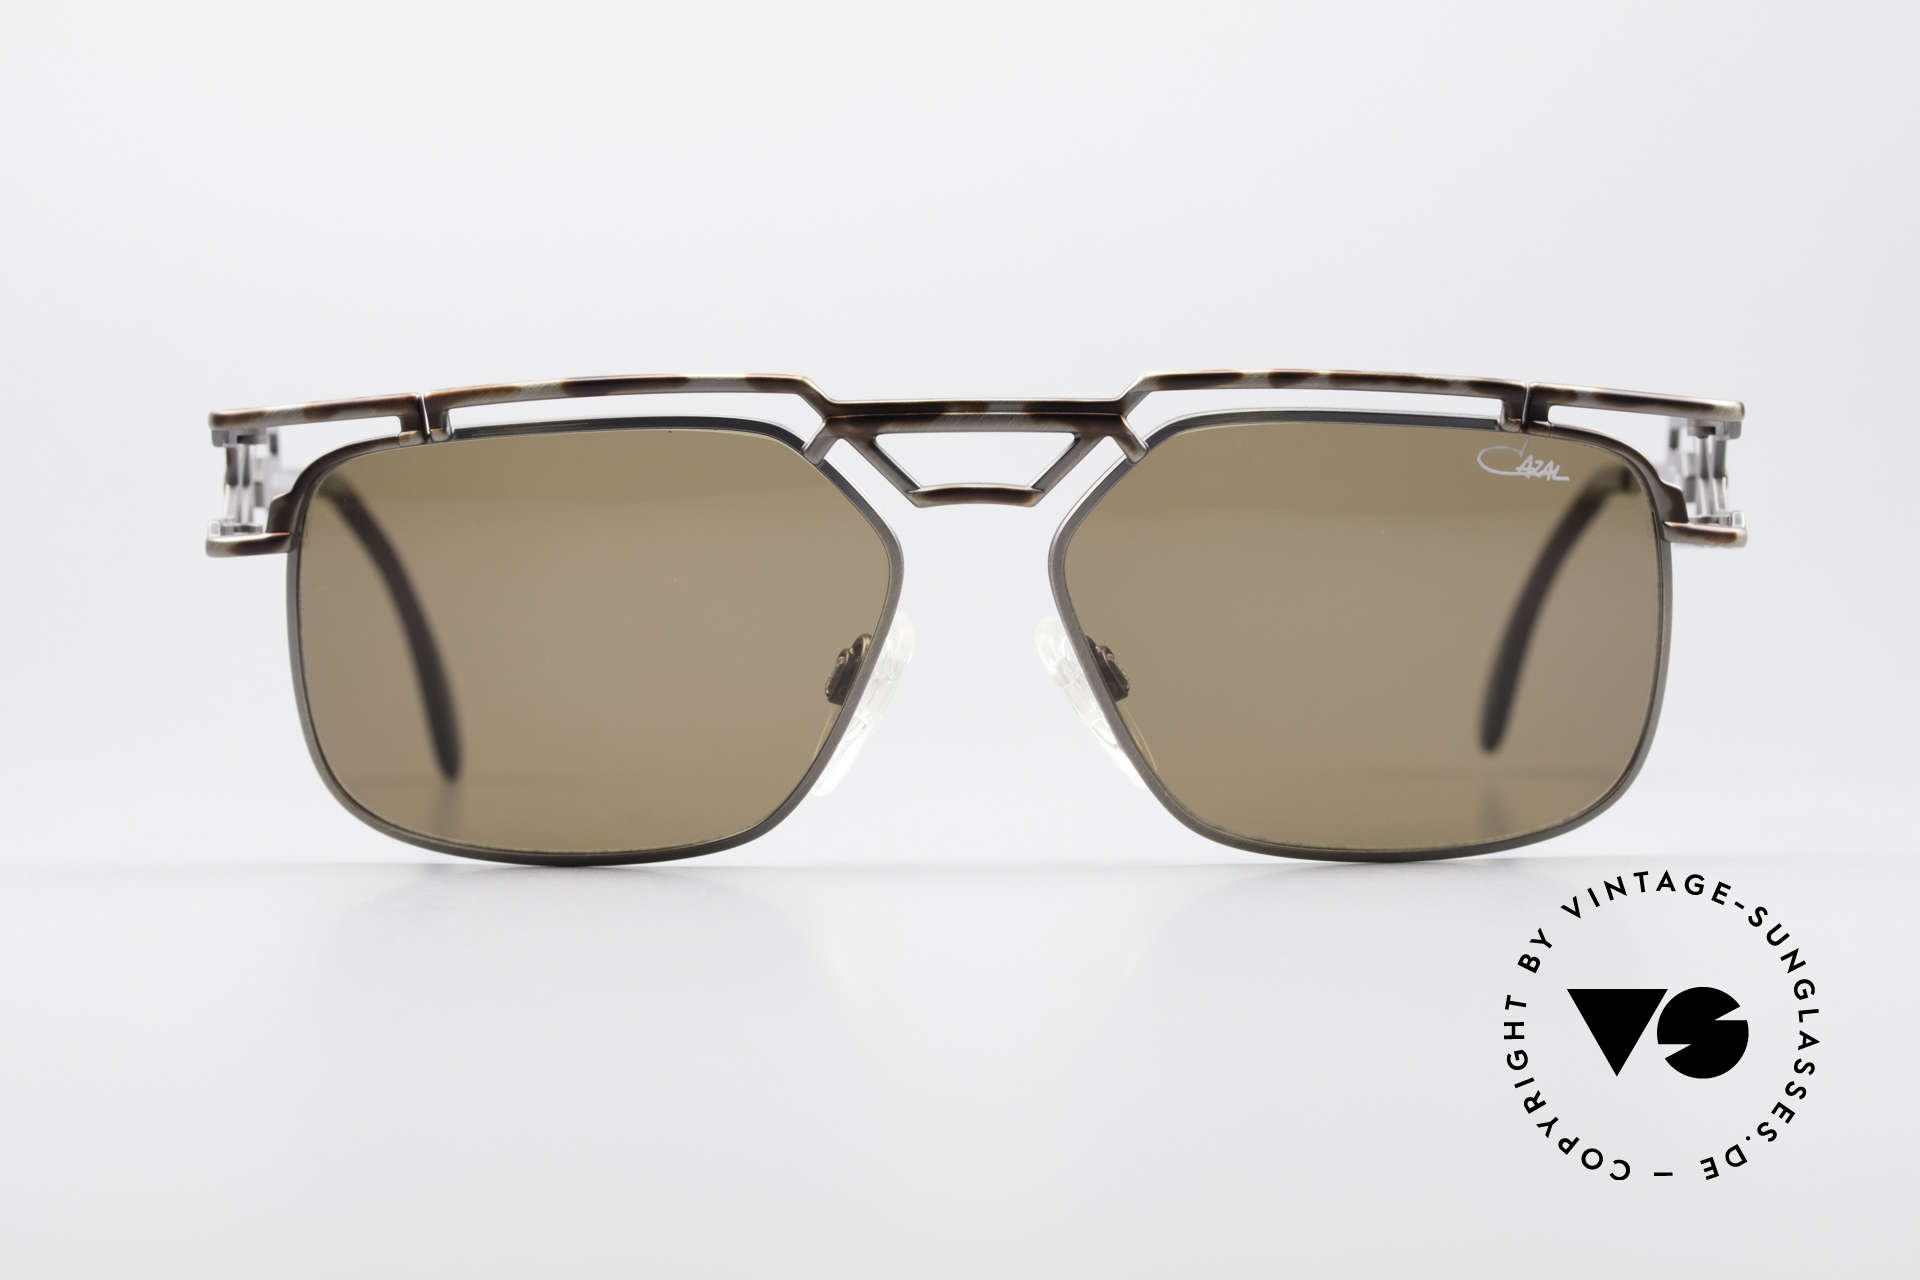 Cazal 973 High-End Designer Sunglasses, phenomenal quality 'Made in Germany'- just monolithic, Made for Men and Women